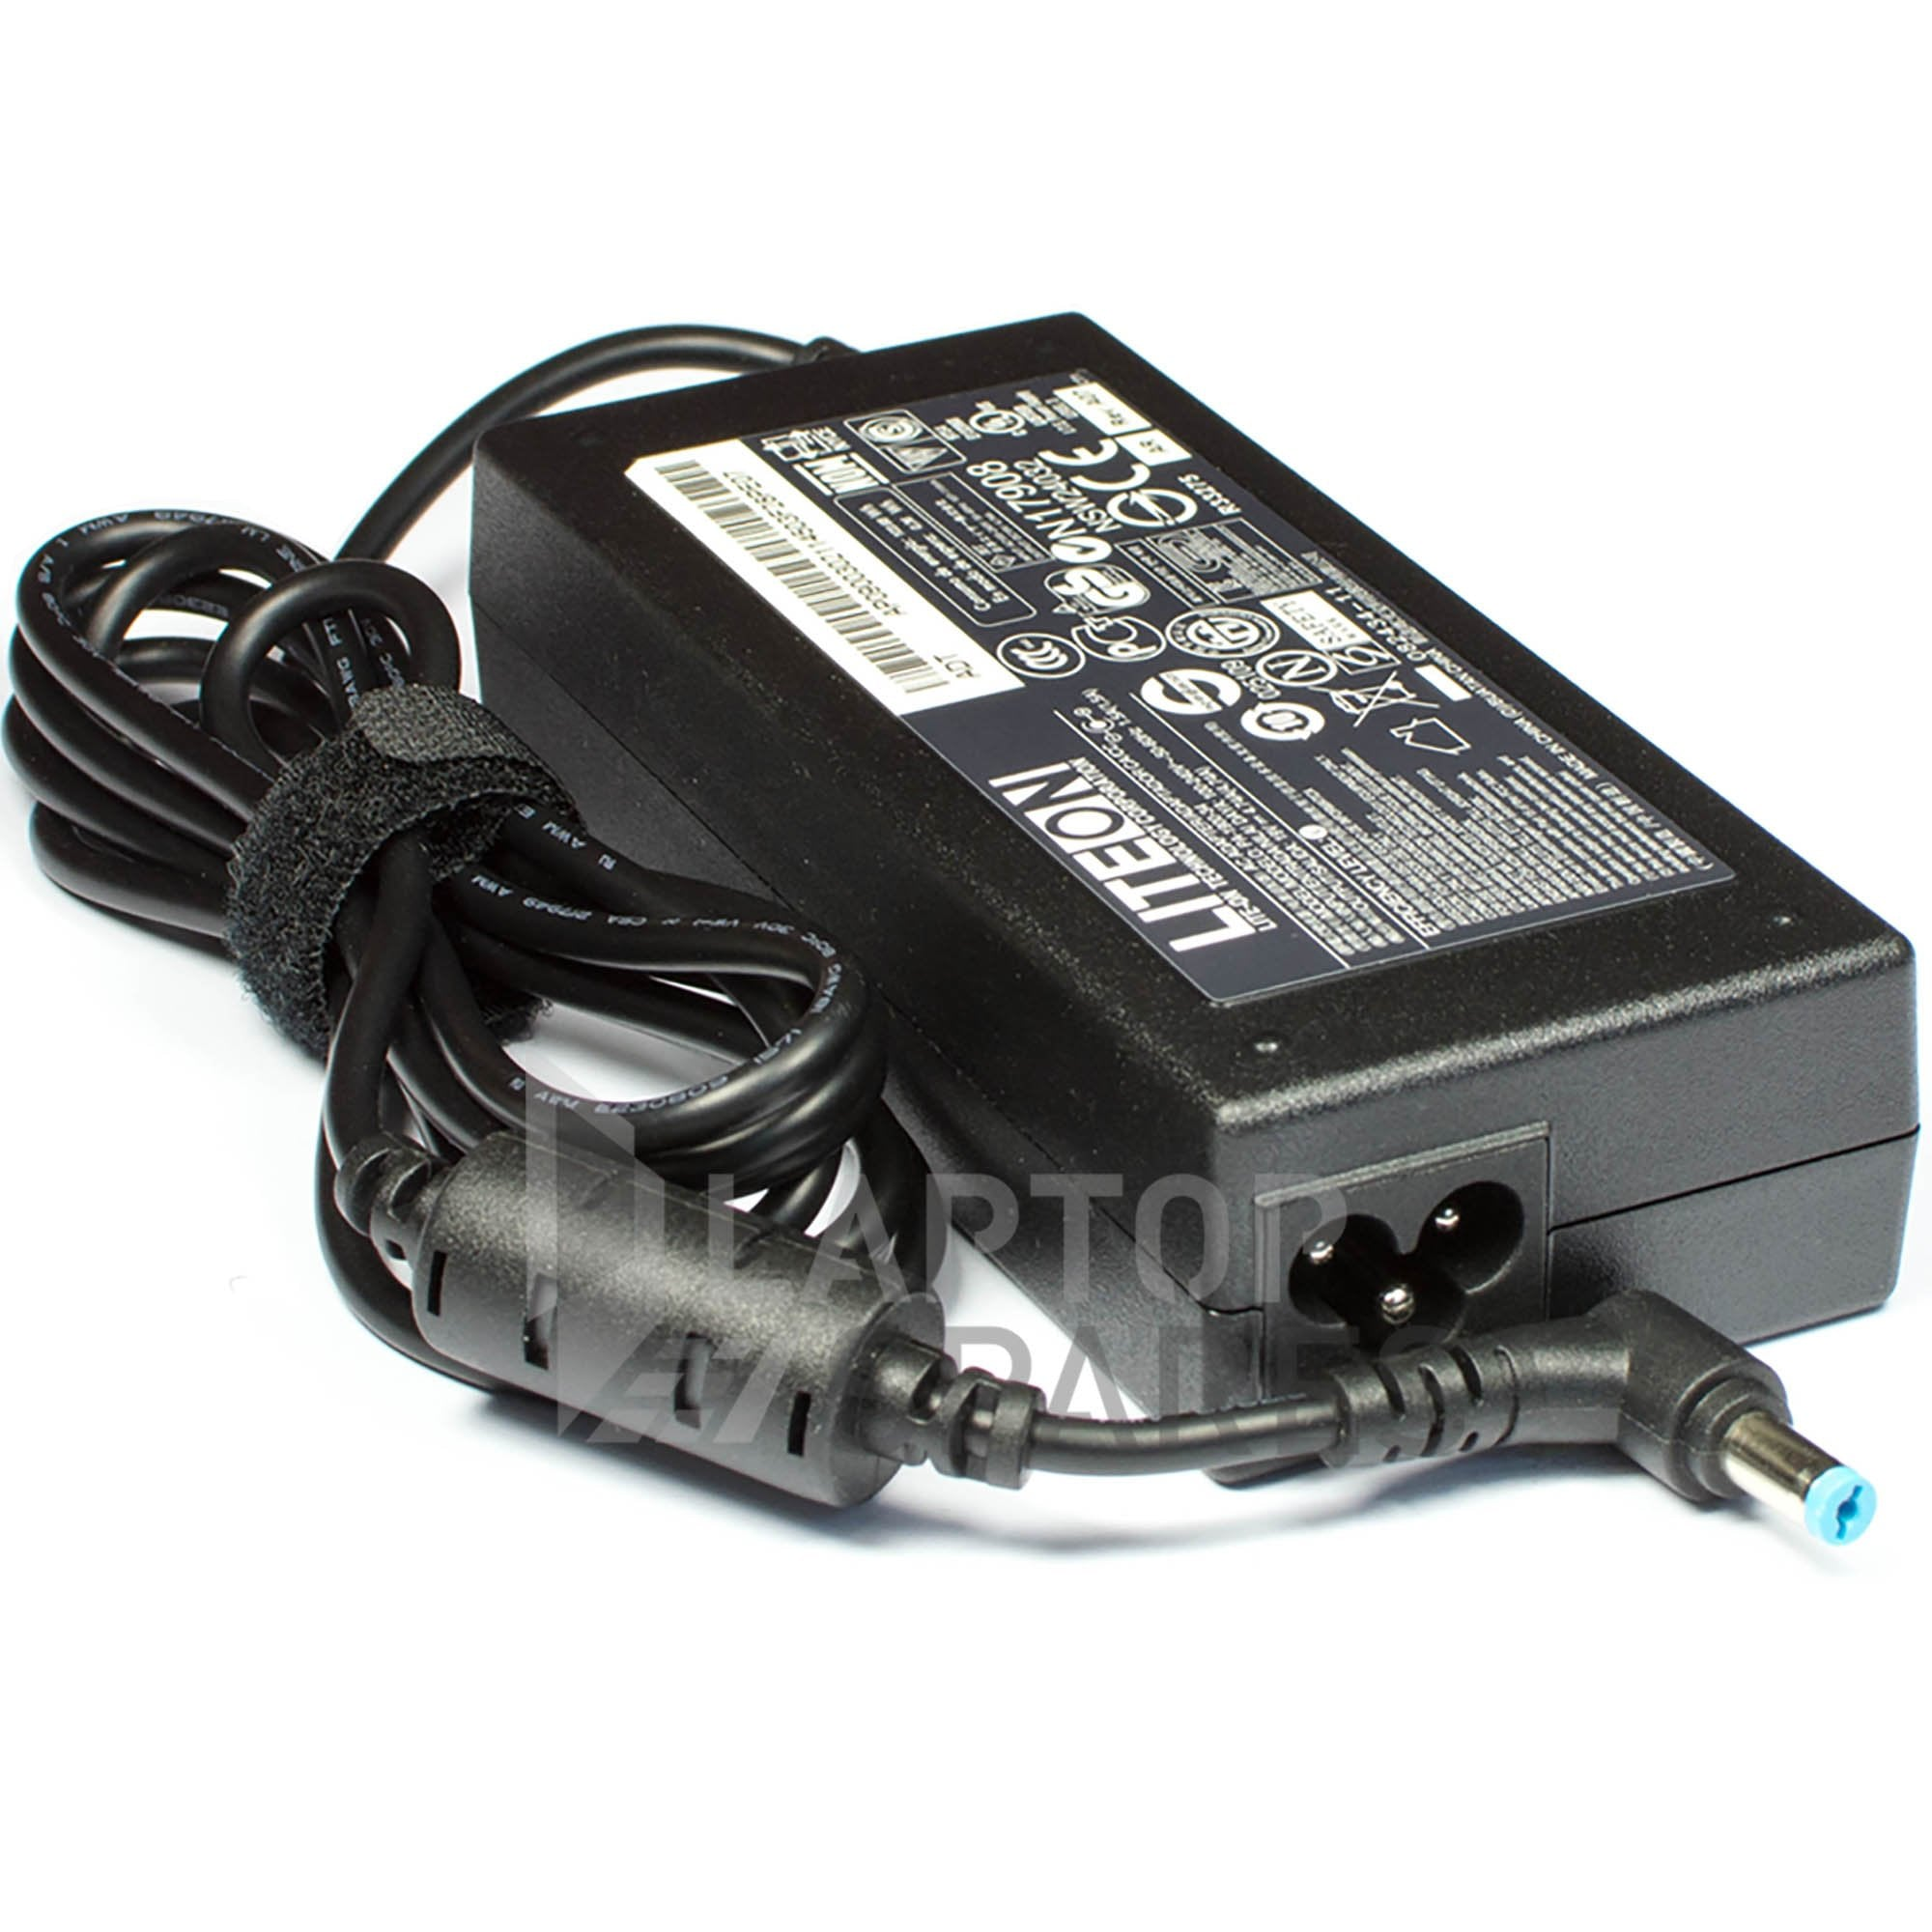 Acer Travelmate 5730 5740 Laptop AC Adapter Charger